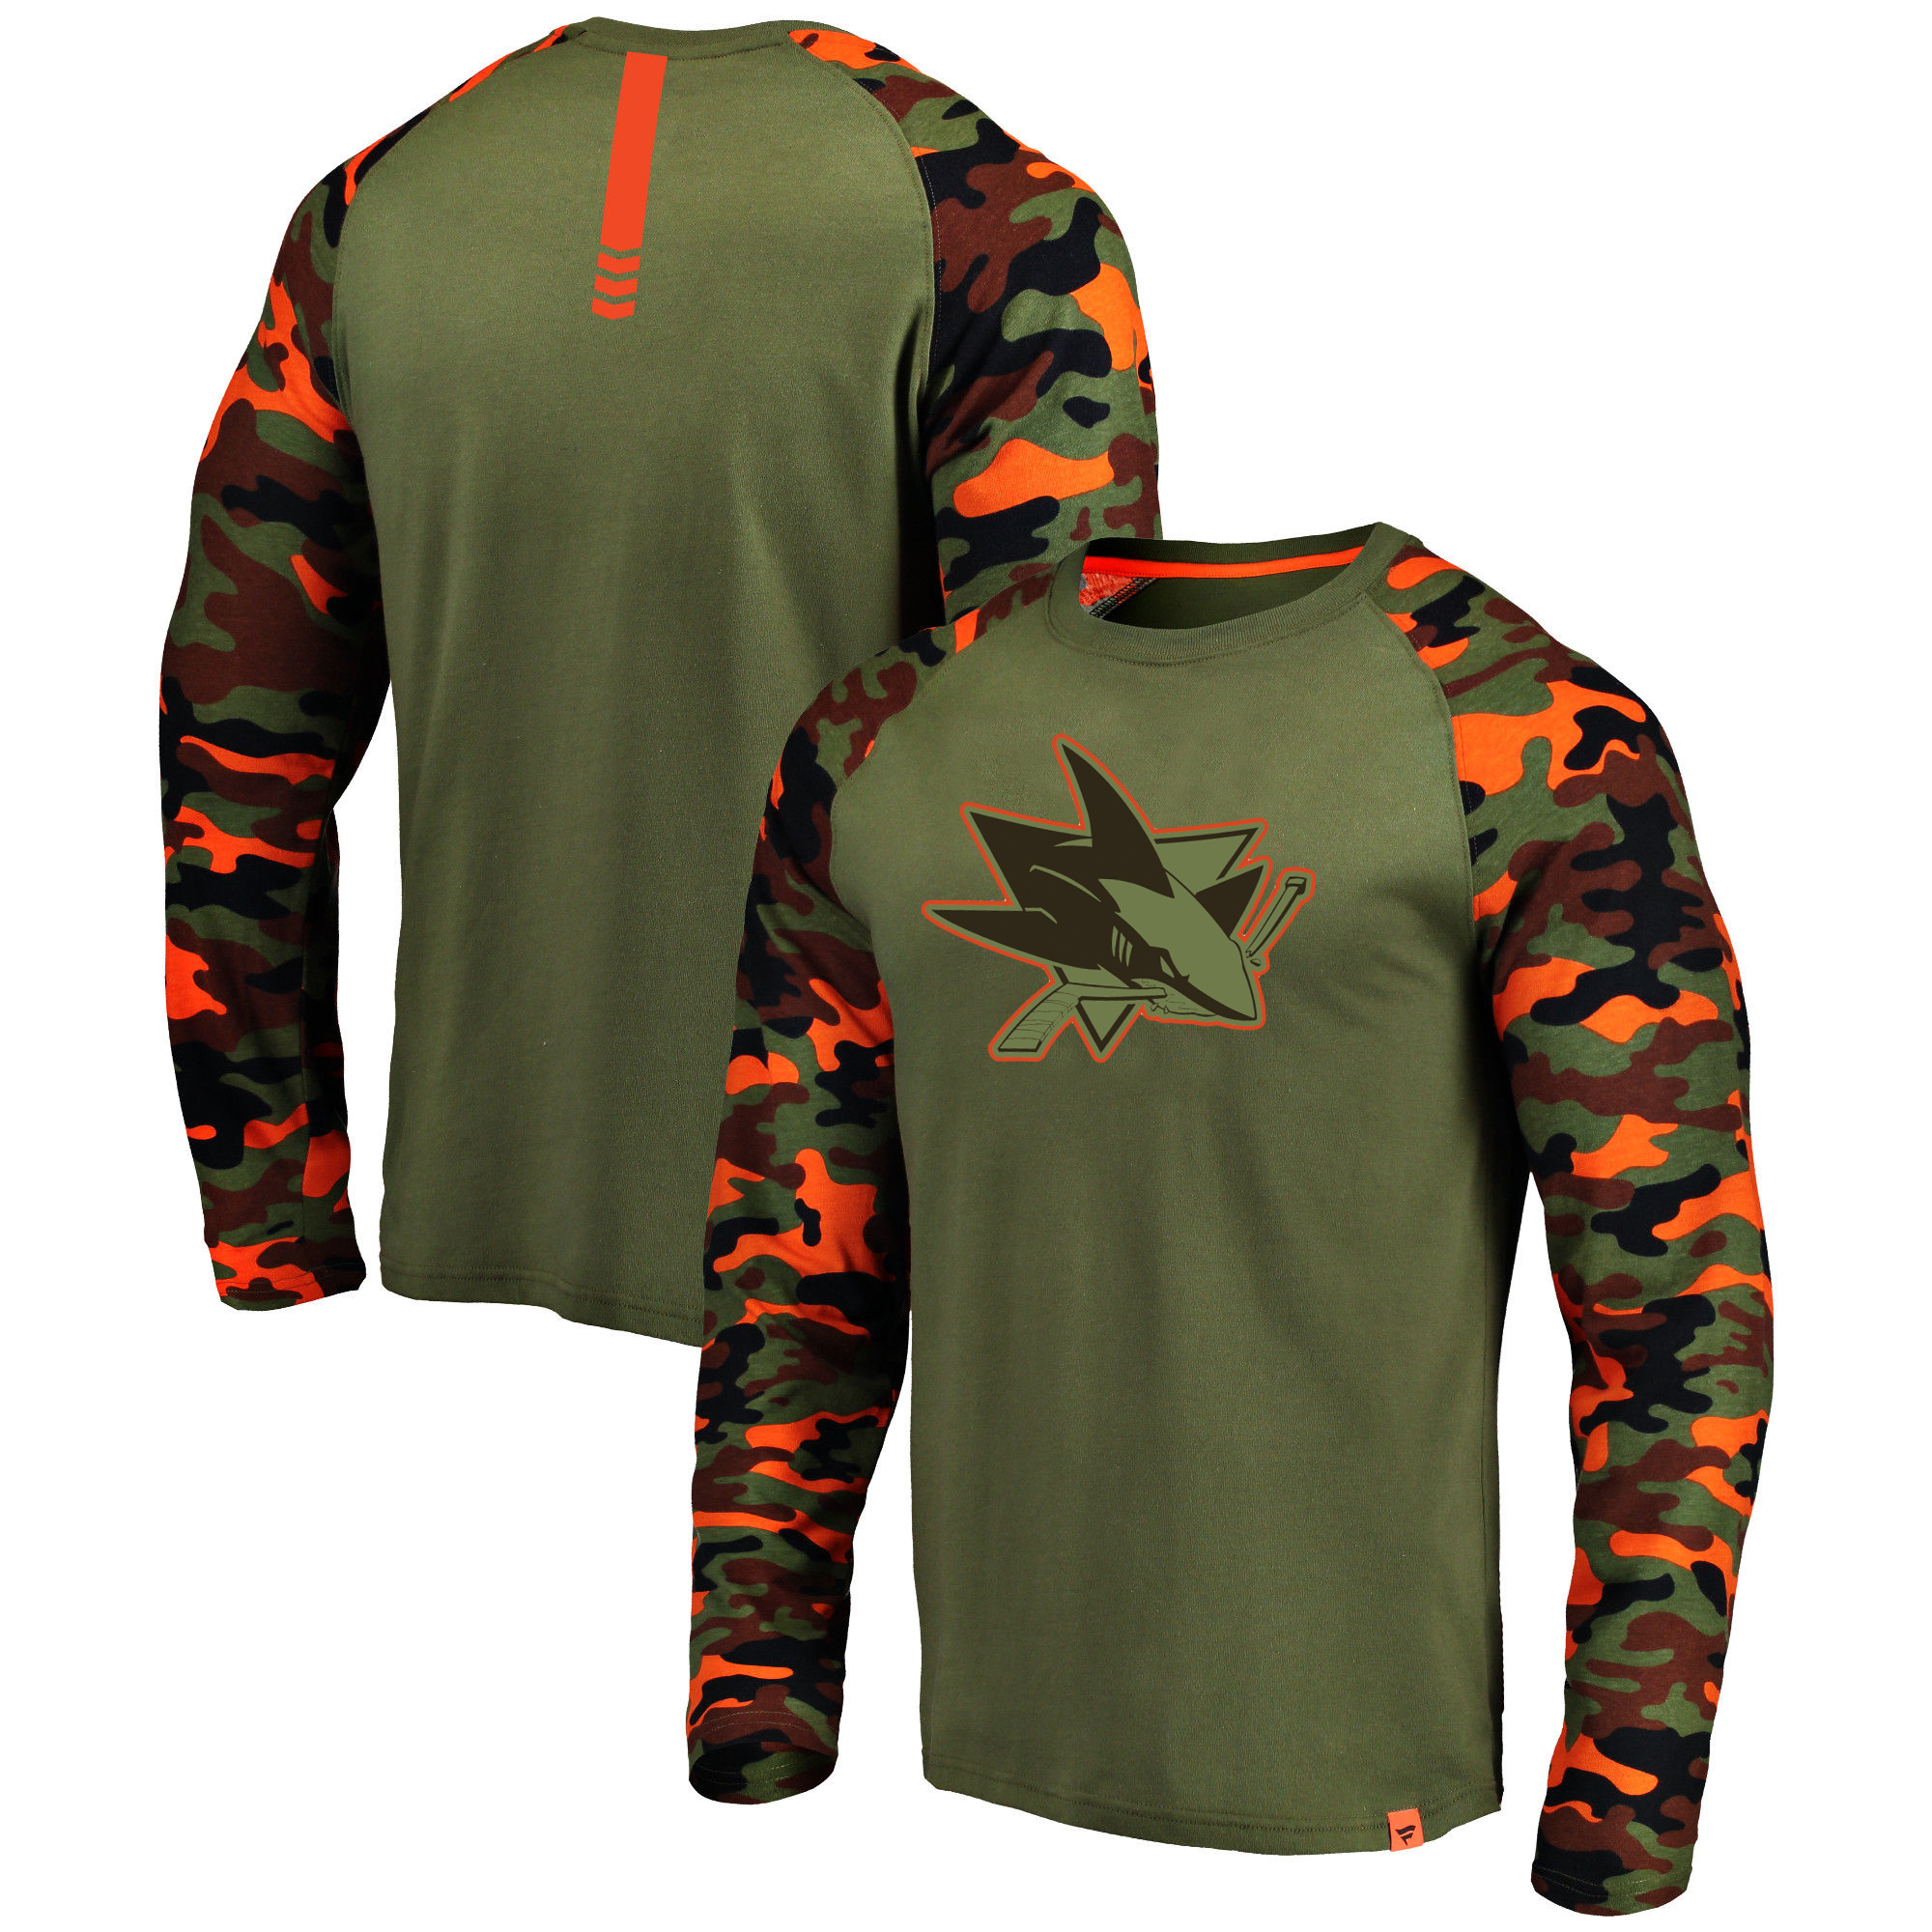 San Jose Sharks Fanatics Branded Olive/Camo Recon Long Sleeve Raglan T-Shirt